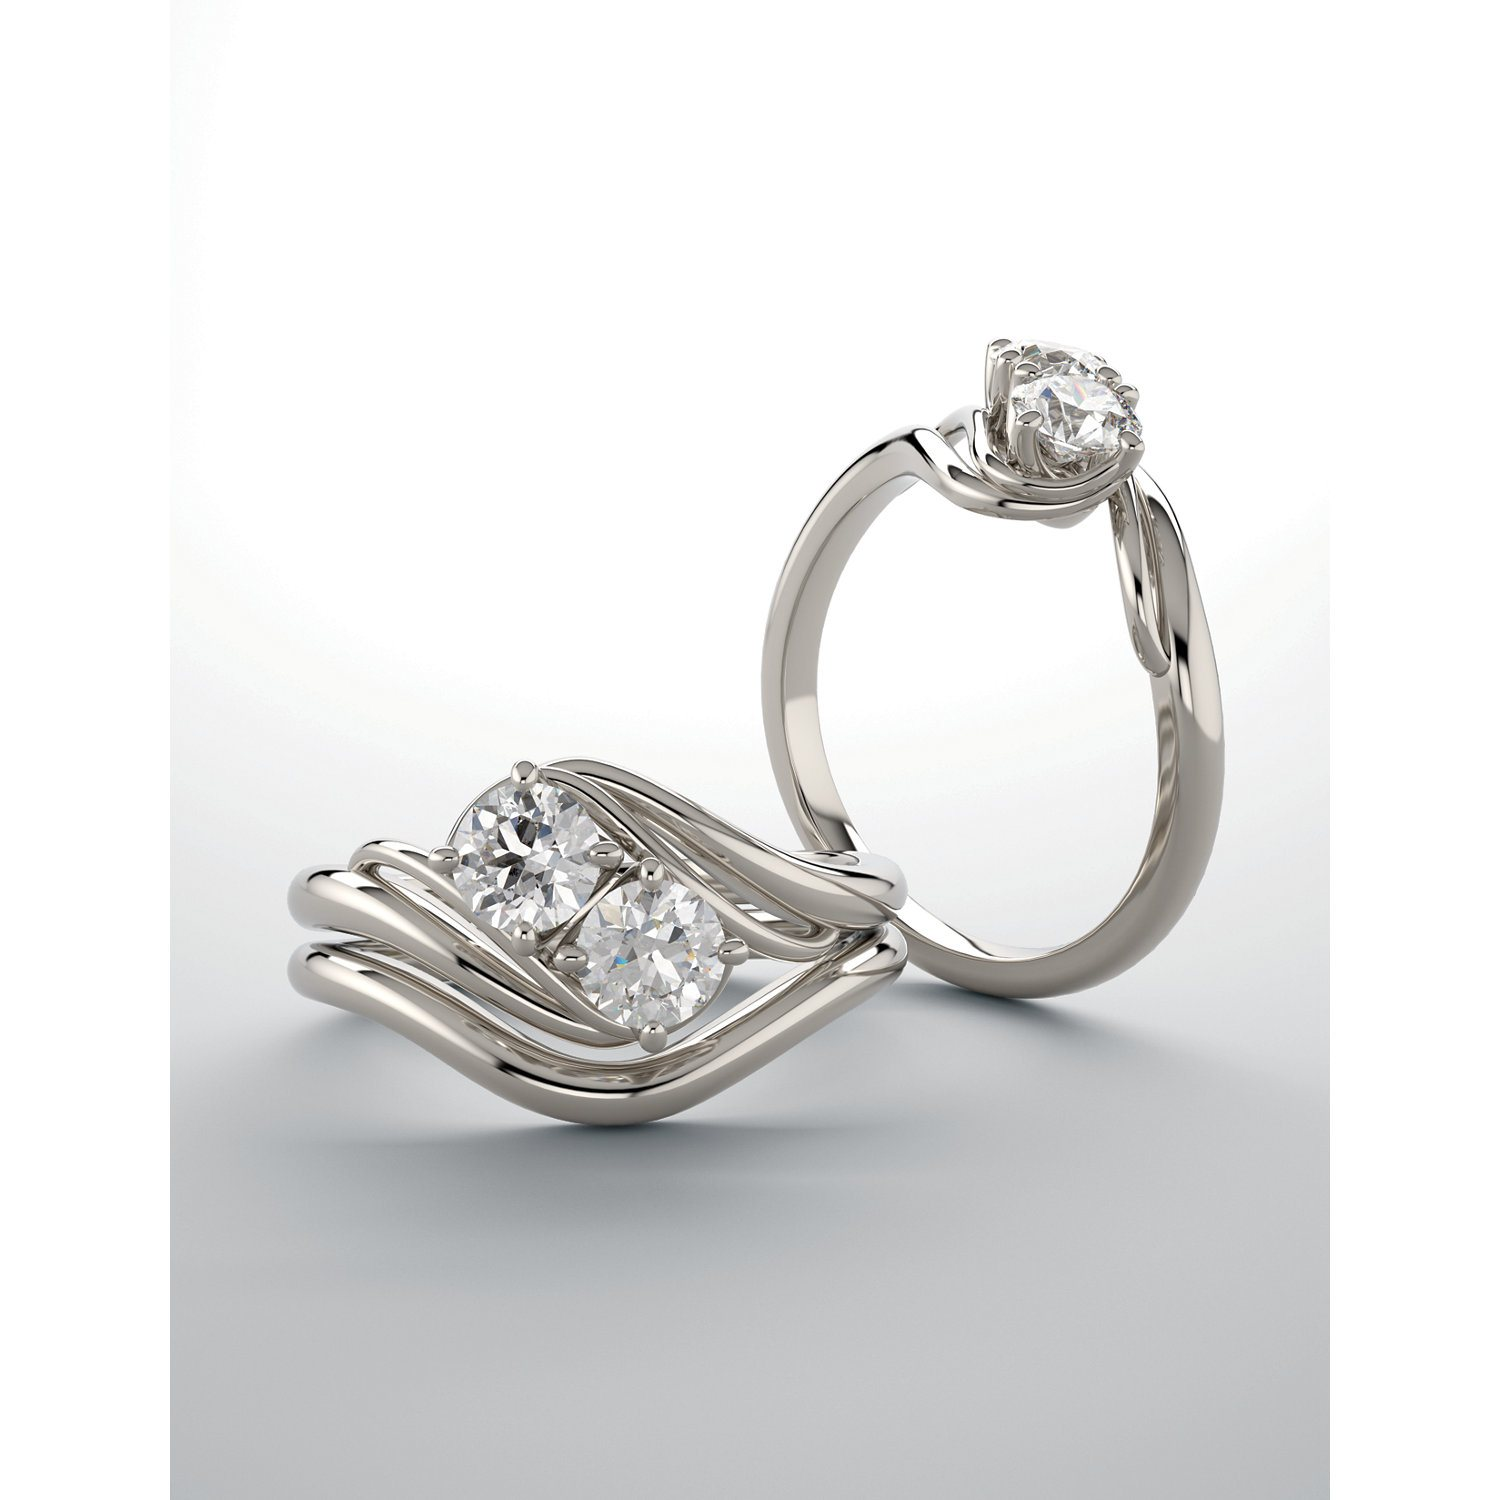 2 Stone Engagement Rings Design